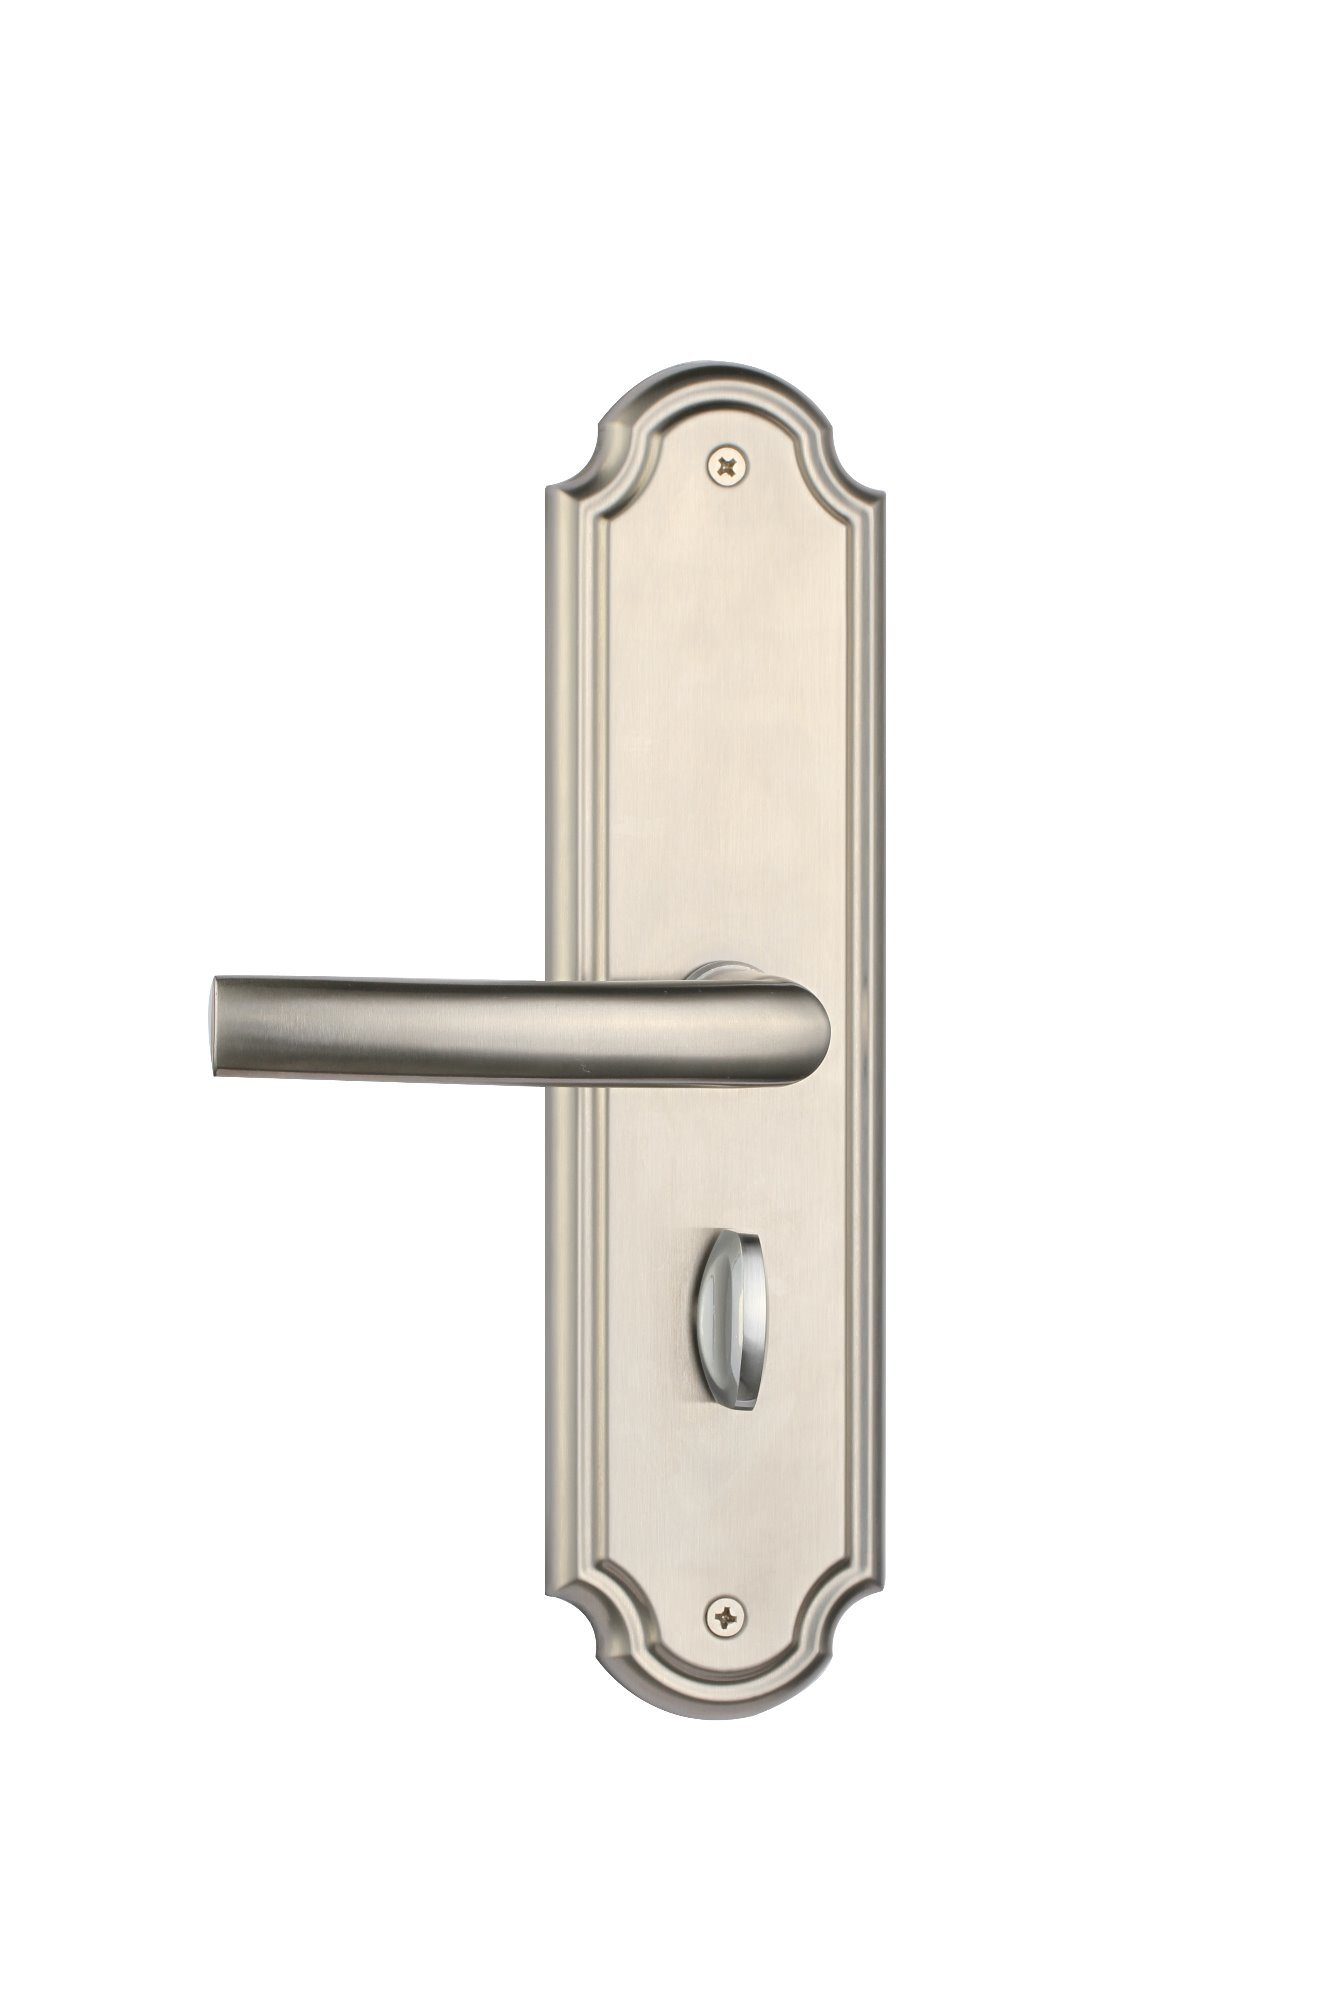 304 Stainless Steel Golden Color Electronic Hotel Door Lock